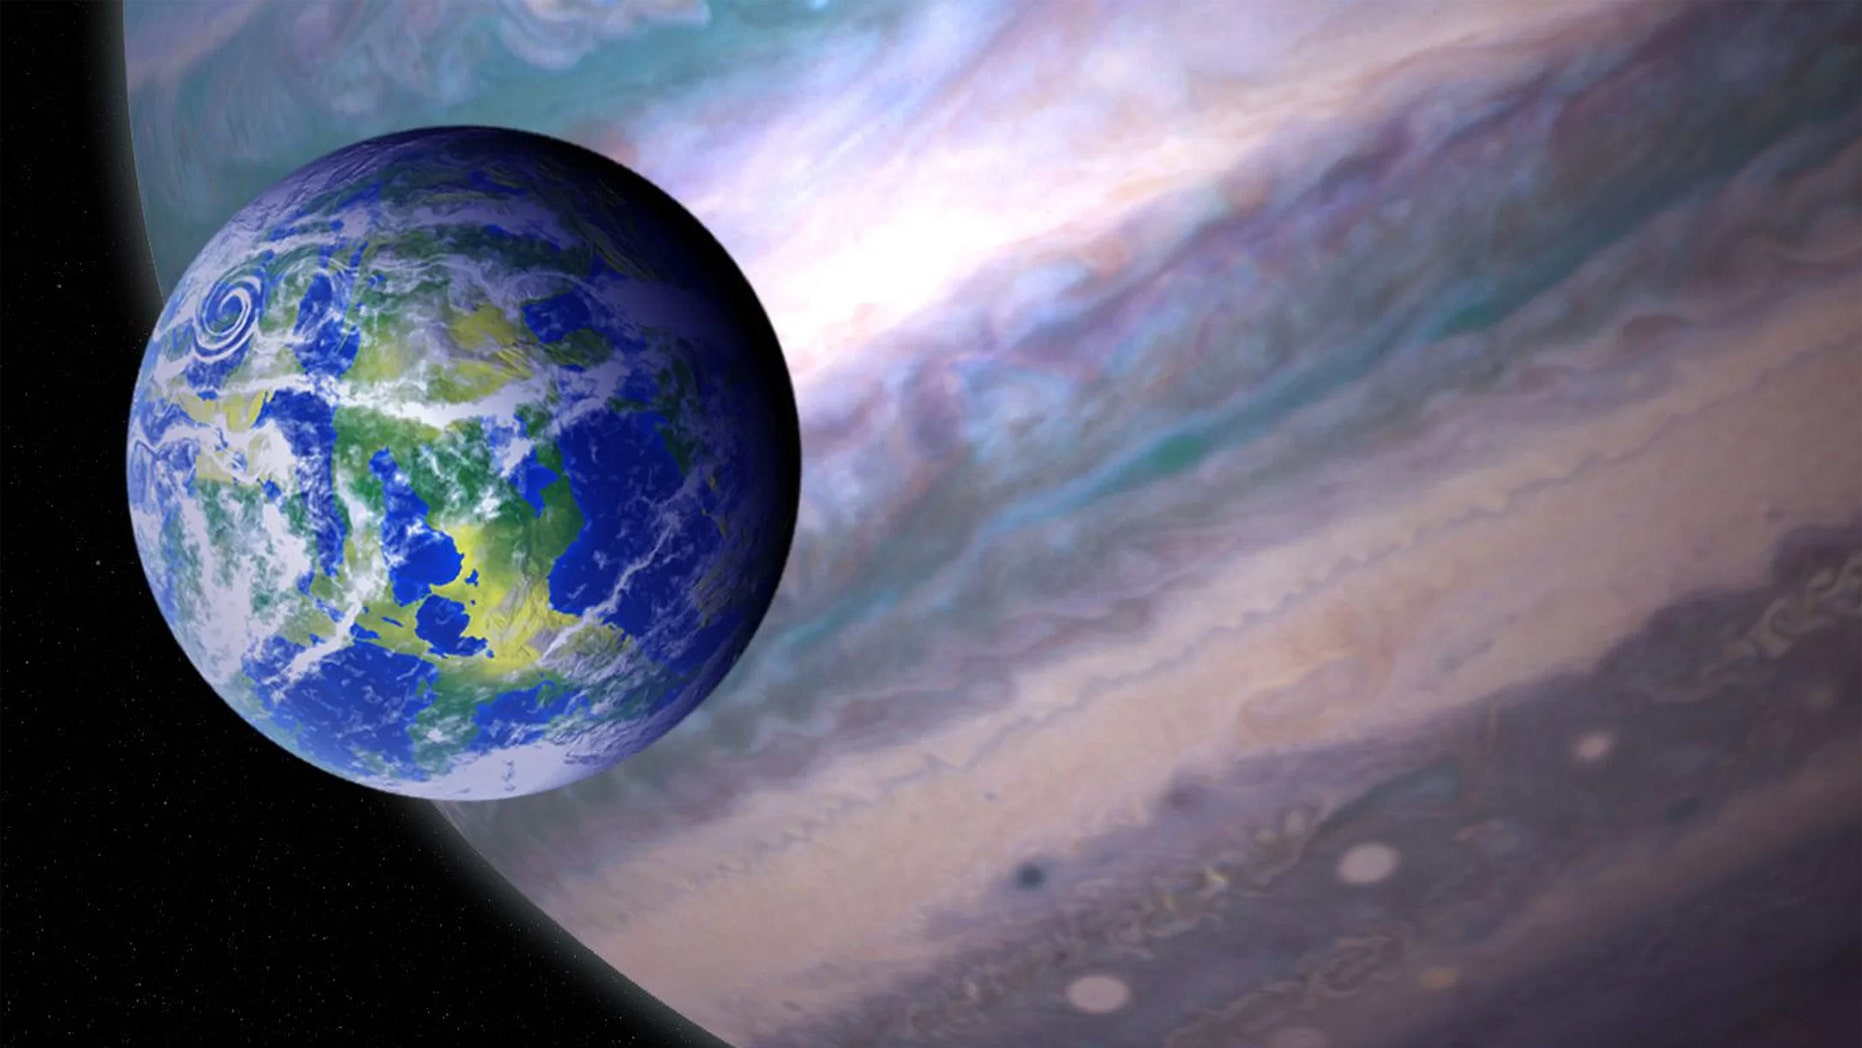 An artist's illustration of a habitable exomoon orbiting a giant exoplanet. Credit: Jay Friedlander/Britt Griswold/NASA/GSFC